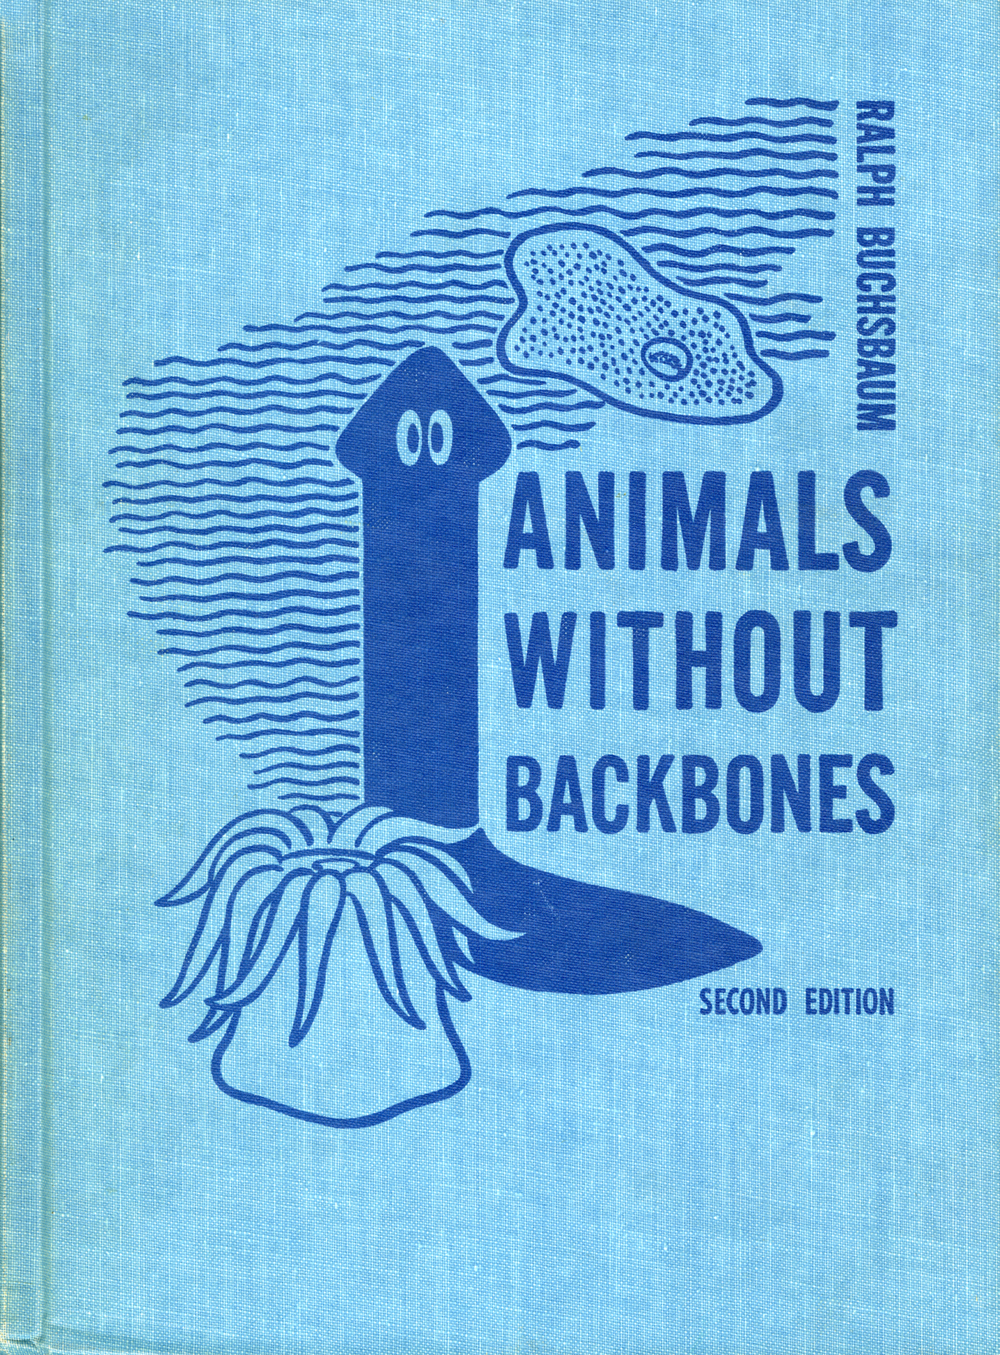 Elizabeth Buchsbaum,  Animals Without Backbones (2nd edition).  Written by Ralph Buchsbaum. 1st Edition published in 1938, 2nd edition in 1948 by University of Chicago Press.